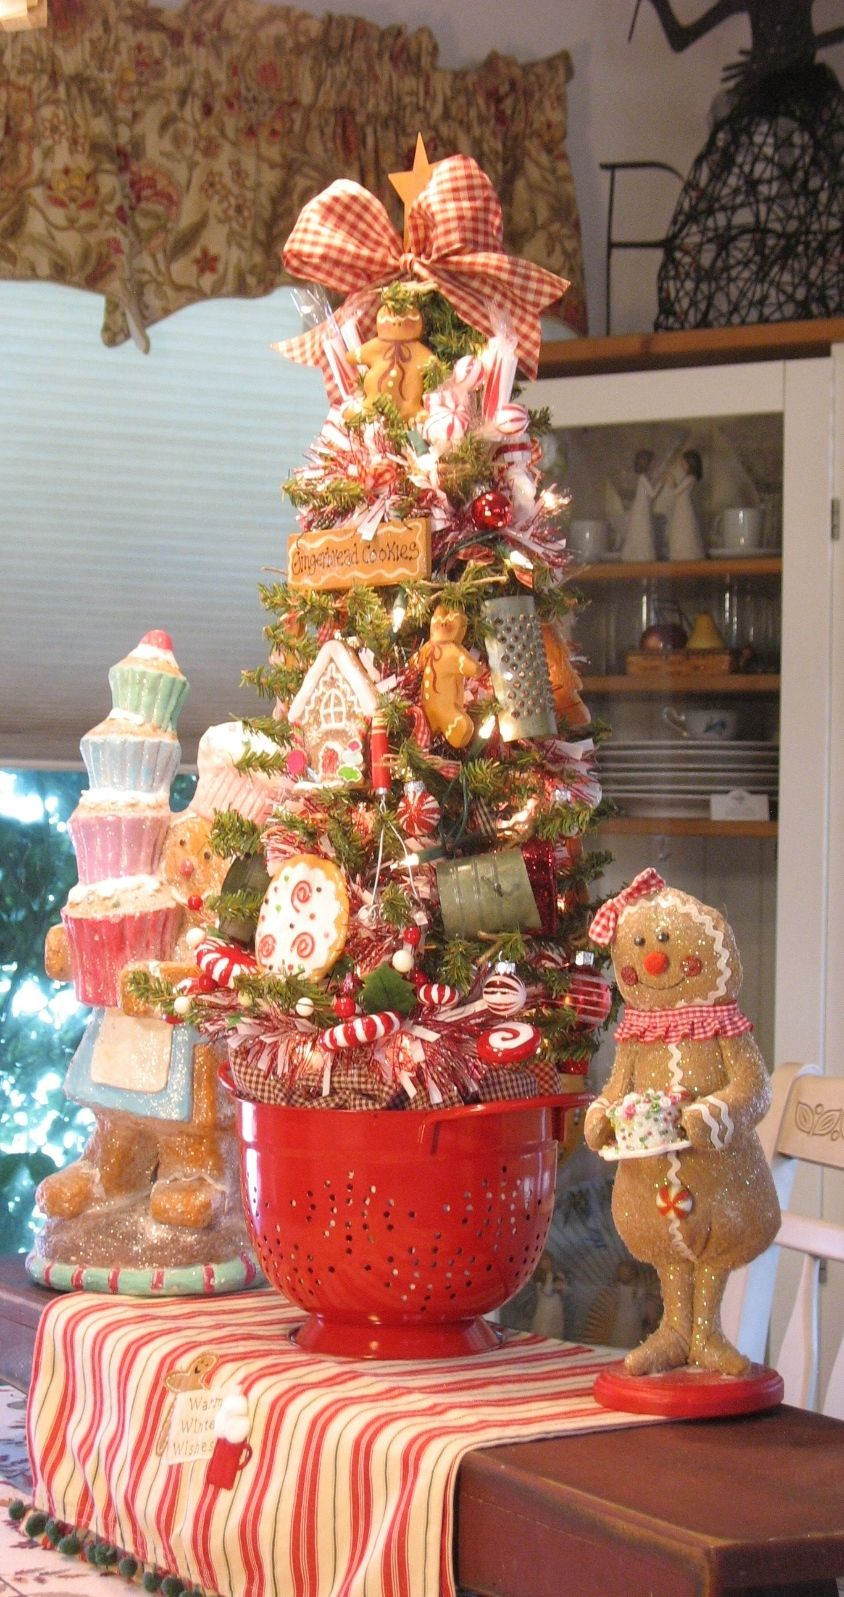 Home Made Treats 29 Gingerbread Sweets Kitchen Table Tree In Red Colander By Gingerbread Christmas Decor Christmas Tree Themes Gingerbread Christmas Tree